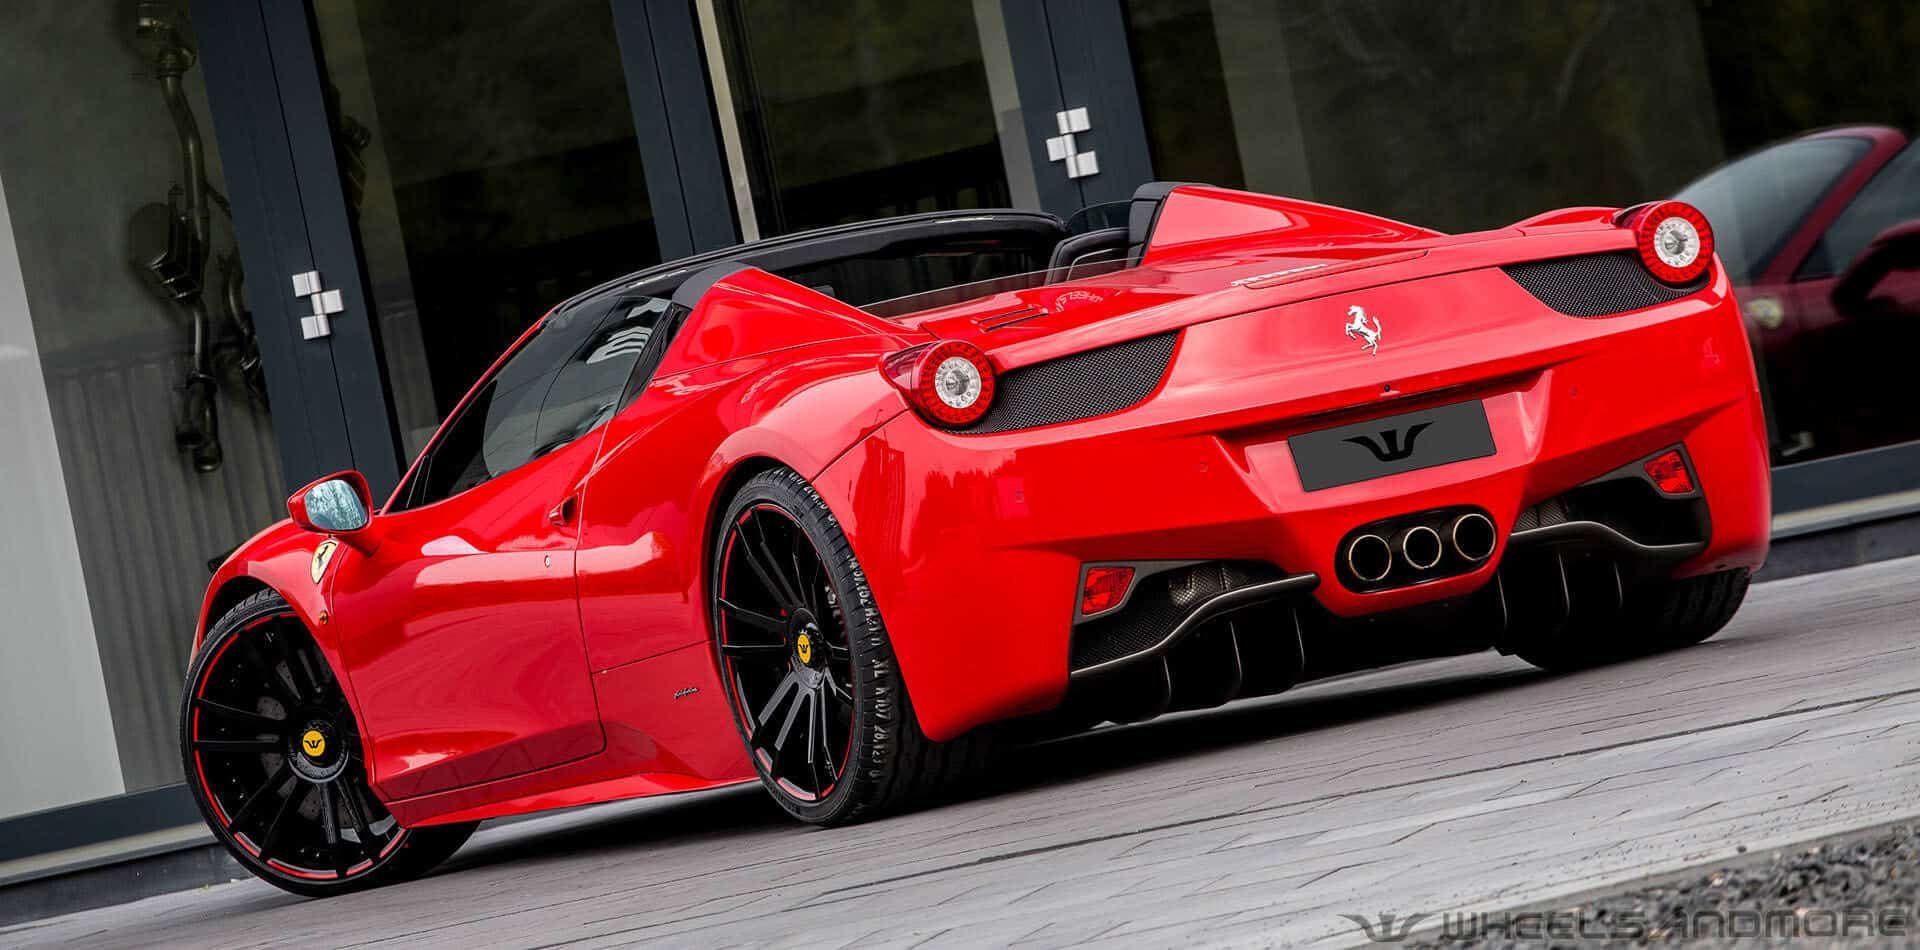 22 Inch Tires >> Ferrari 458 Italia tuning, wheels and exhaust | Wheelsandmore › Wheelsandmore Tuning